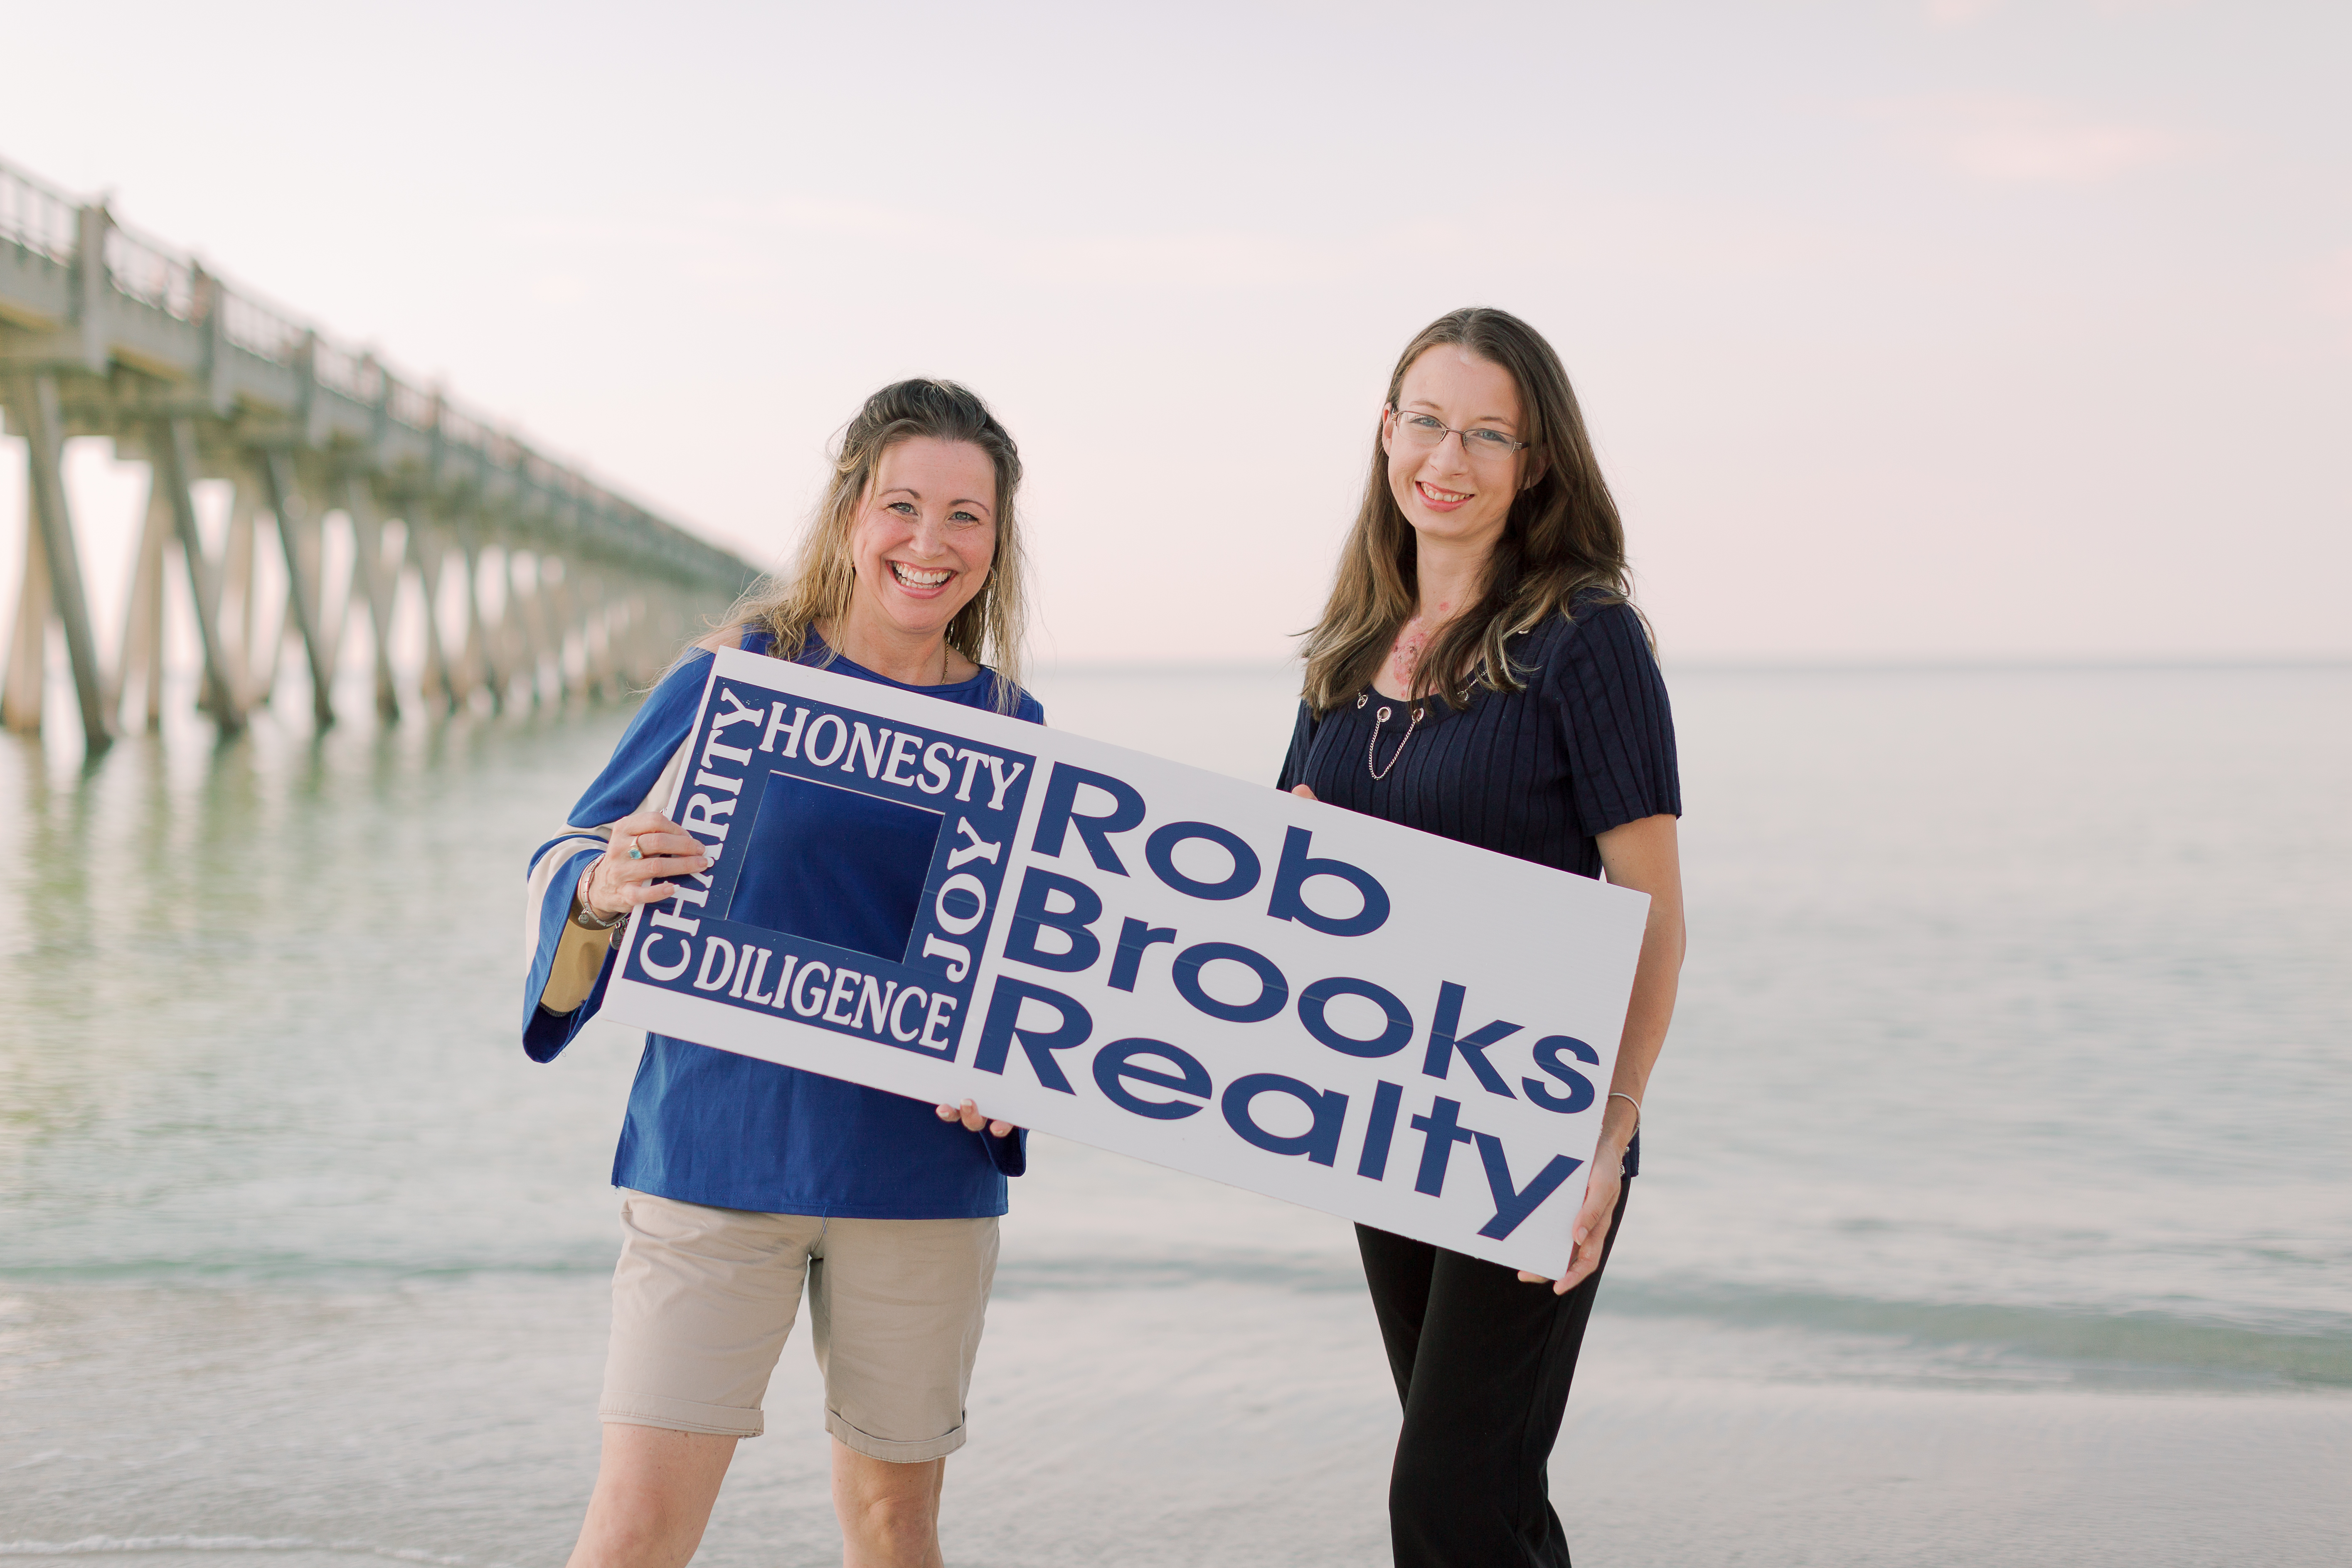 Rob Brooks Realty Property Management Team